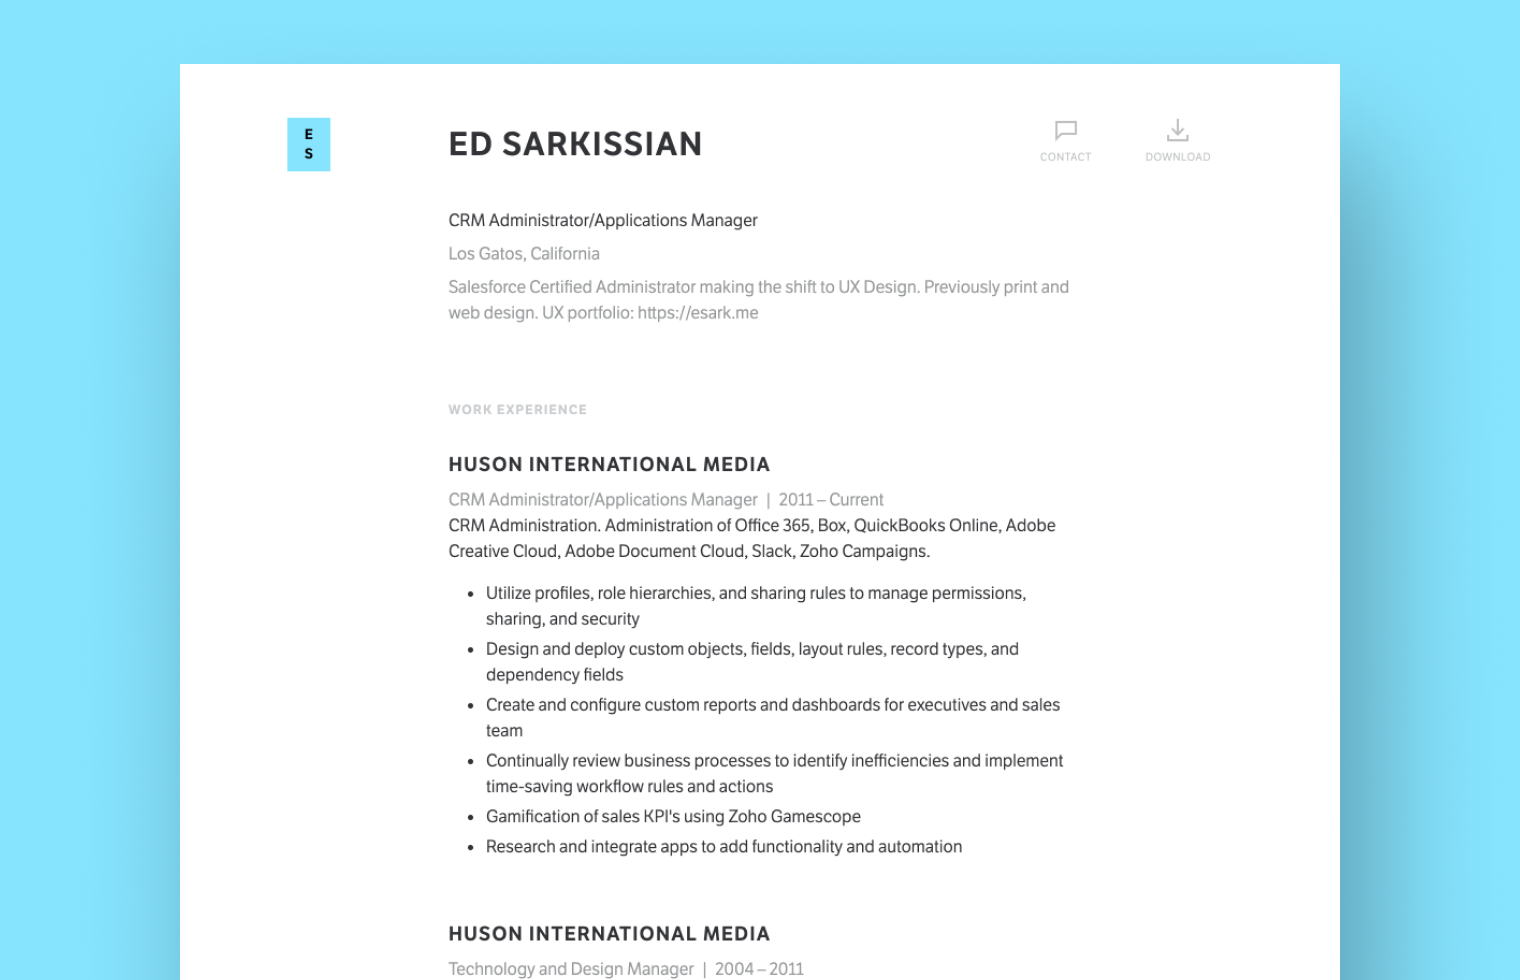 Product Manager resume example built with Standard Resume